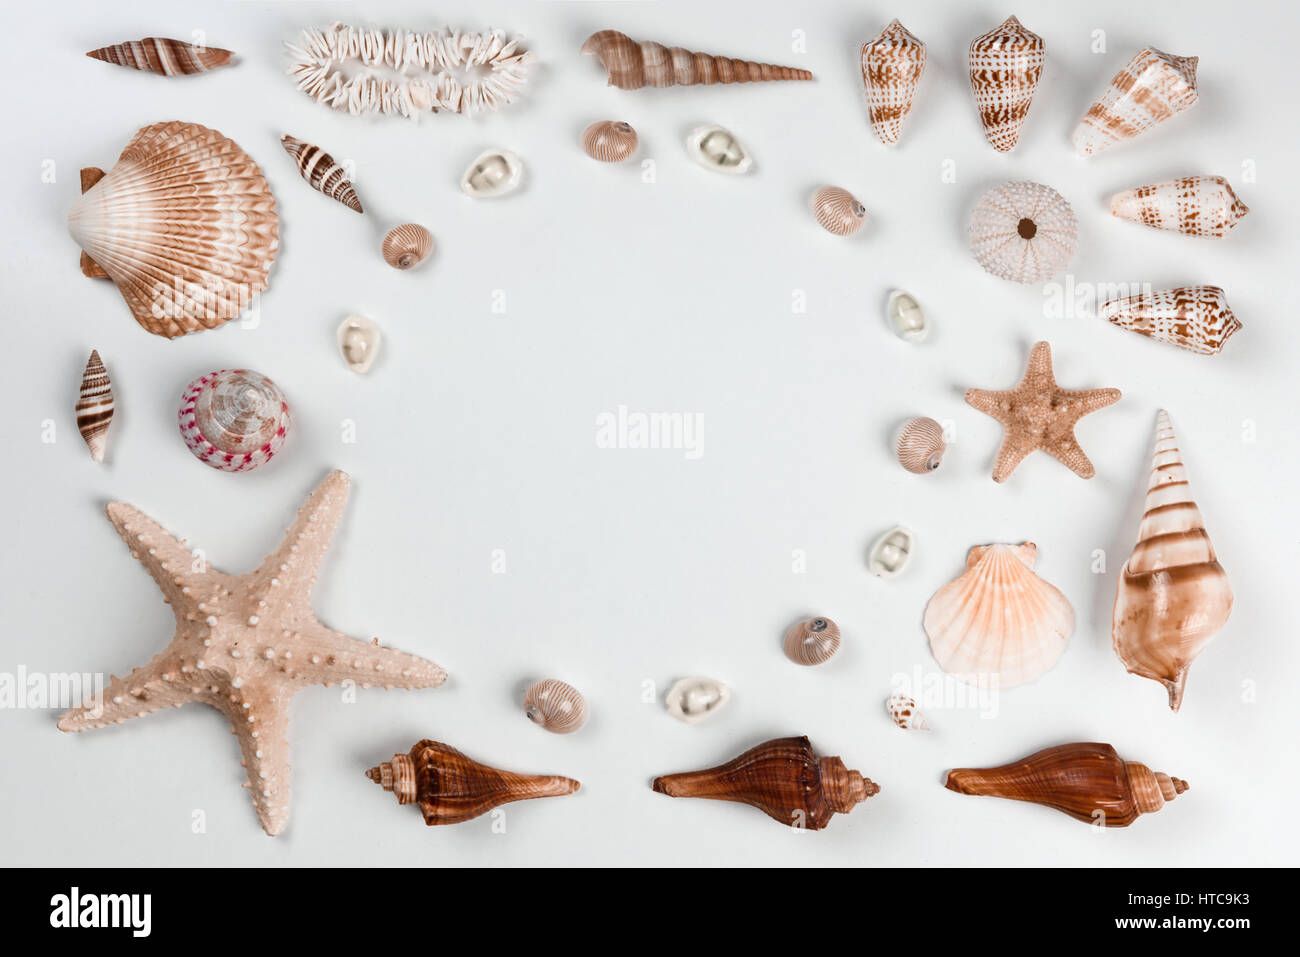 Collection of cockleshells on white background. Flat lay concept Stock Photo